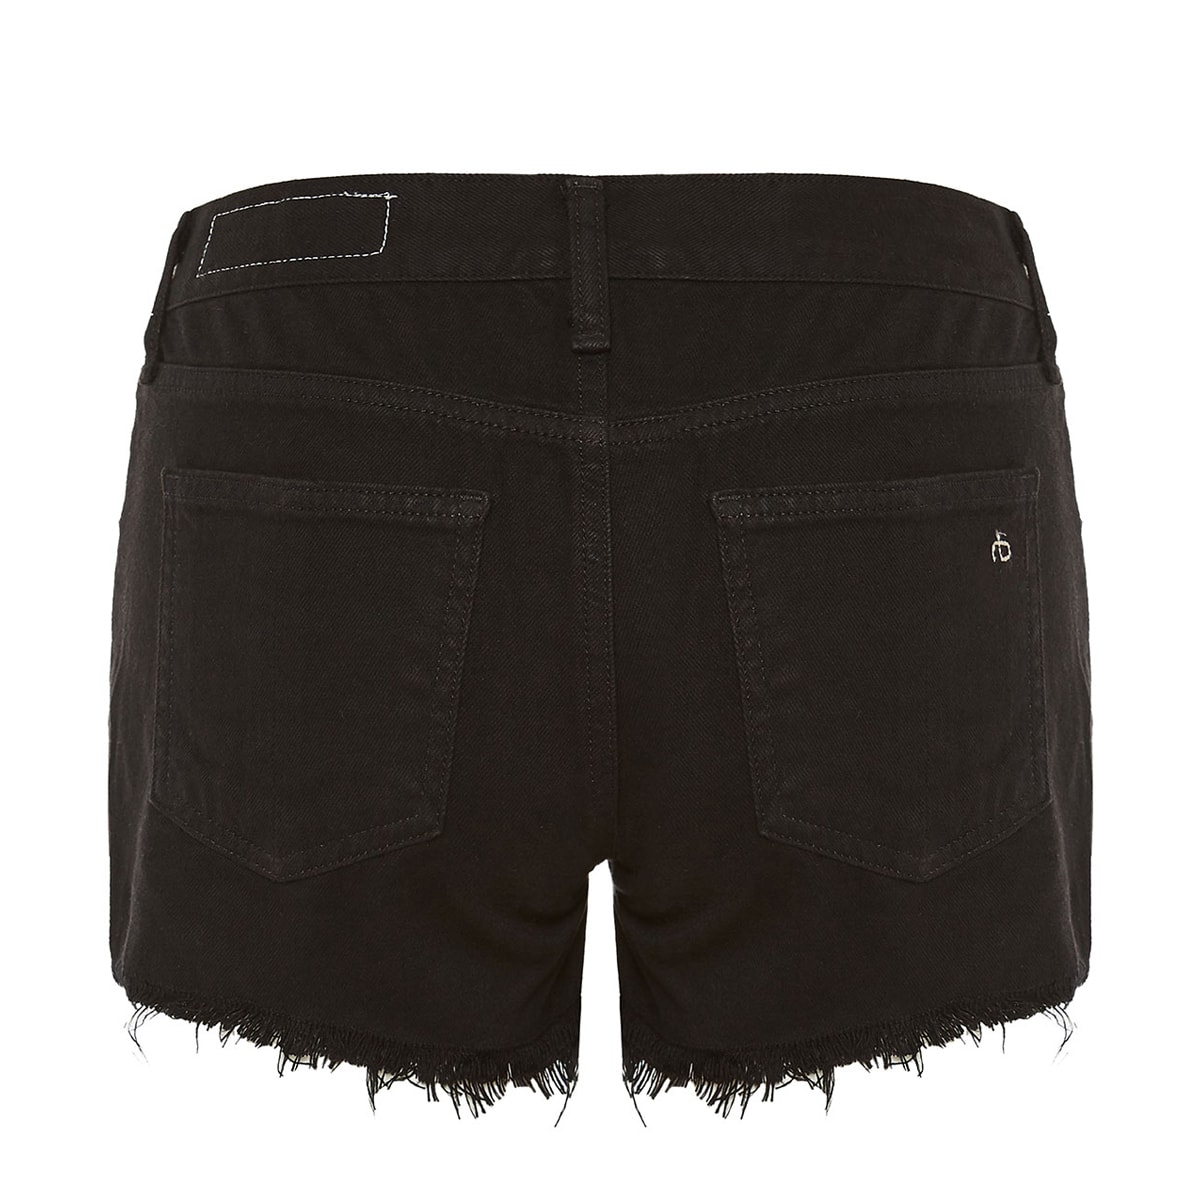 Cut-off cotton shorts